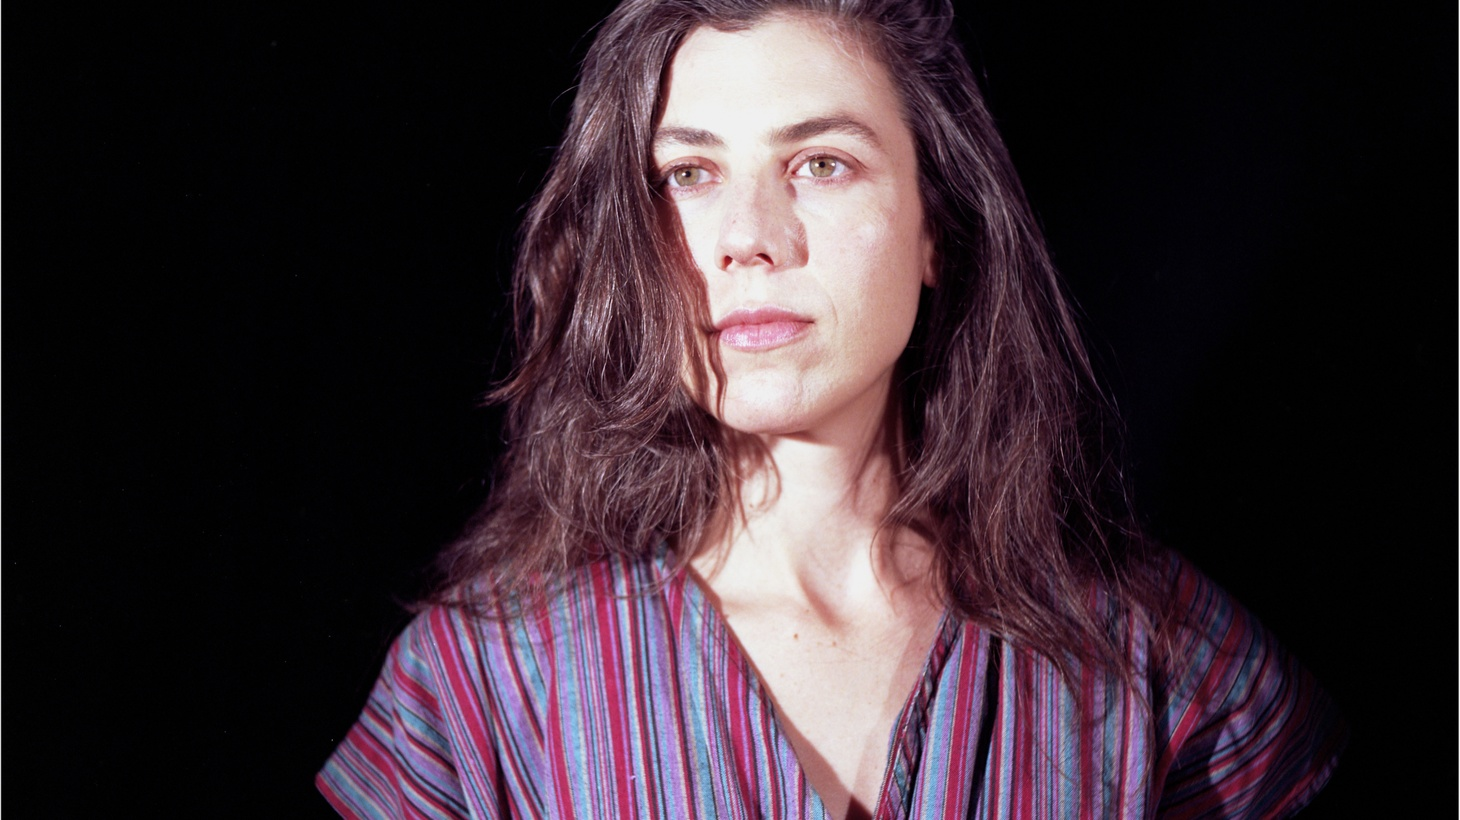 """Somewhere between whirling strings and dazzling arrangements, we hear Julia Holter's haunting vocals emerge on """"Words I Heard."""" It's a soft place to land when the world gets too chaotic."""